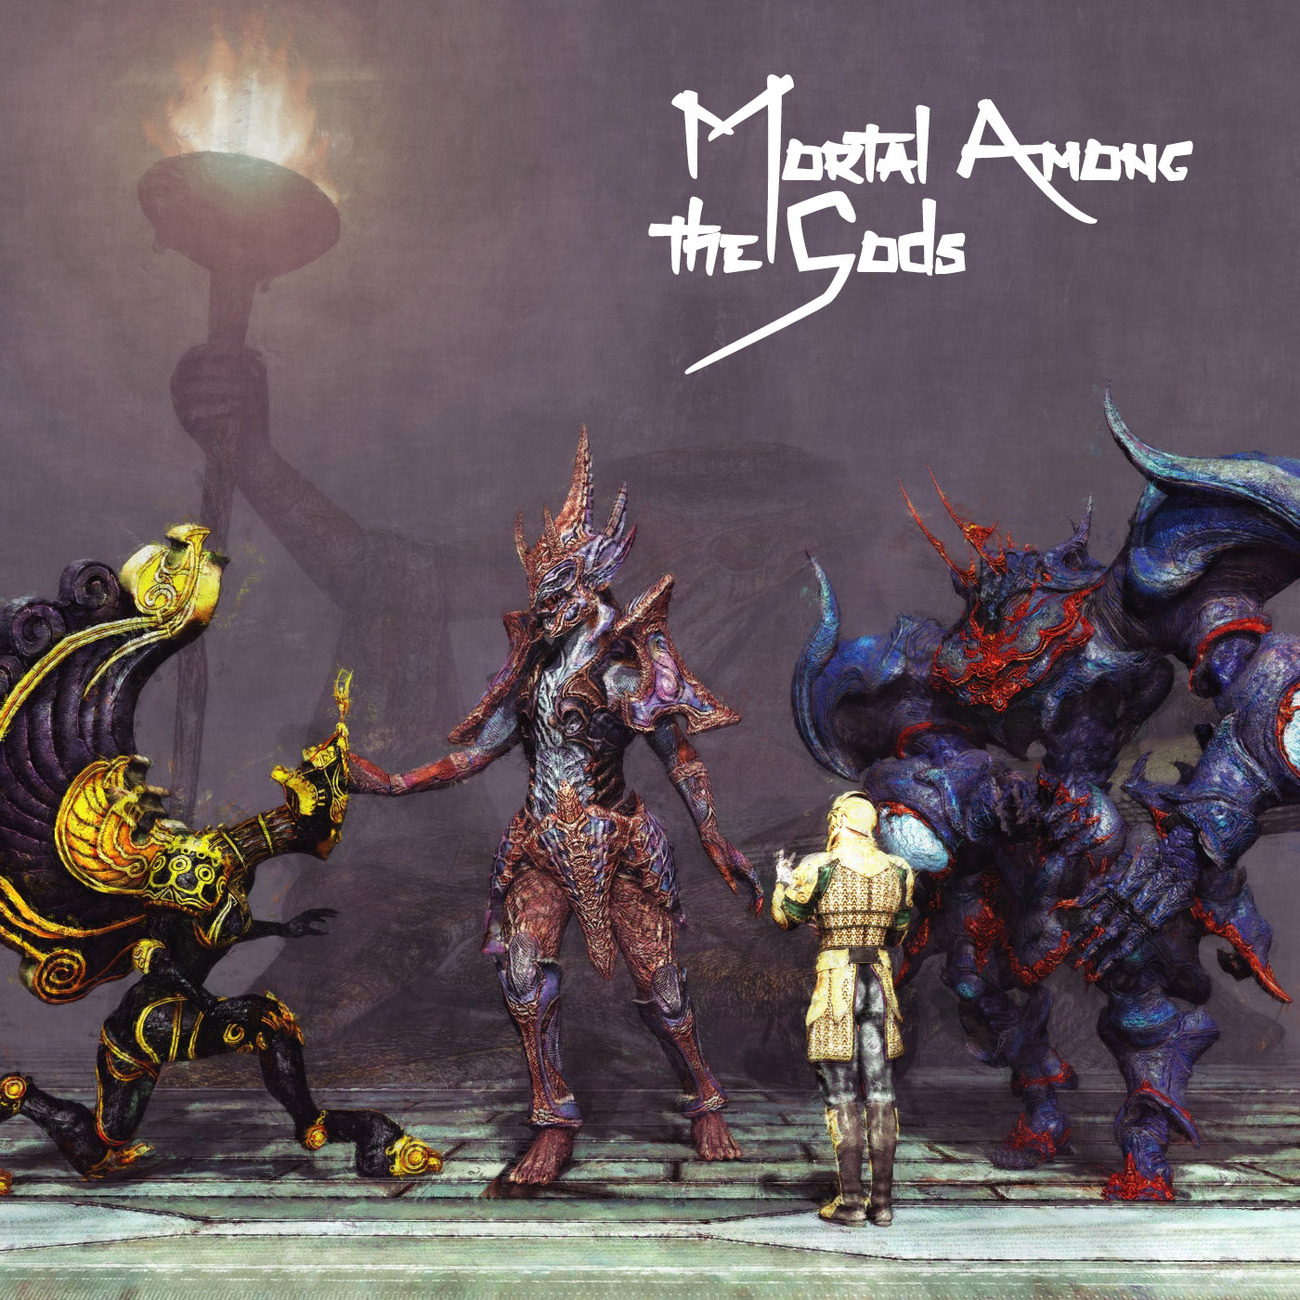 Mortal Among the Gods by rps53